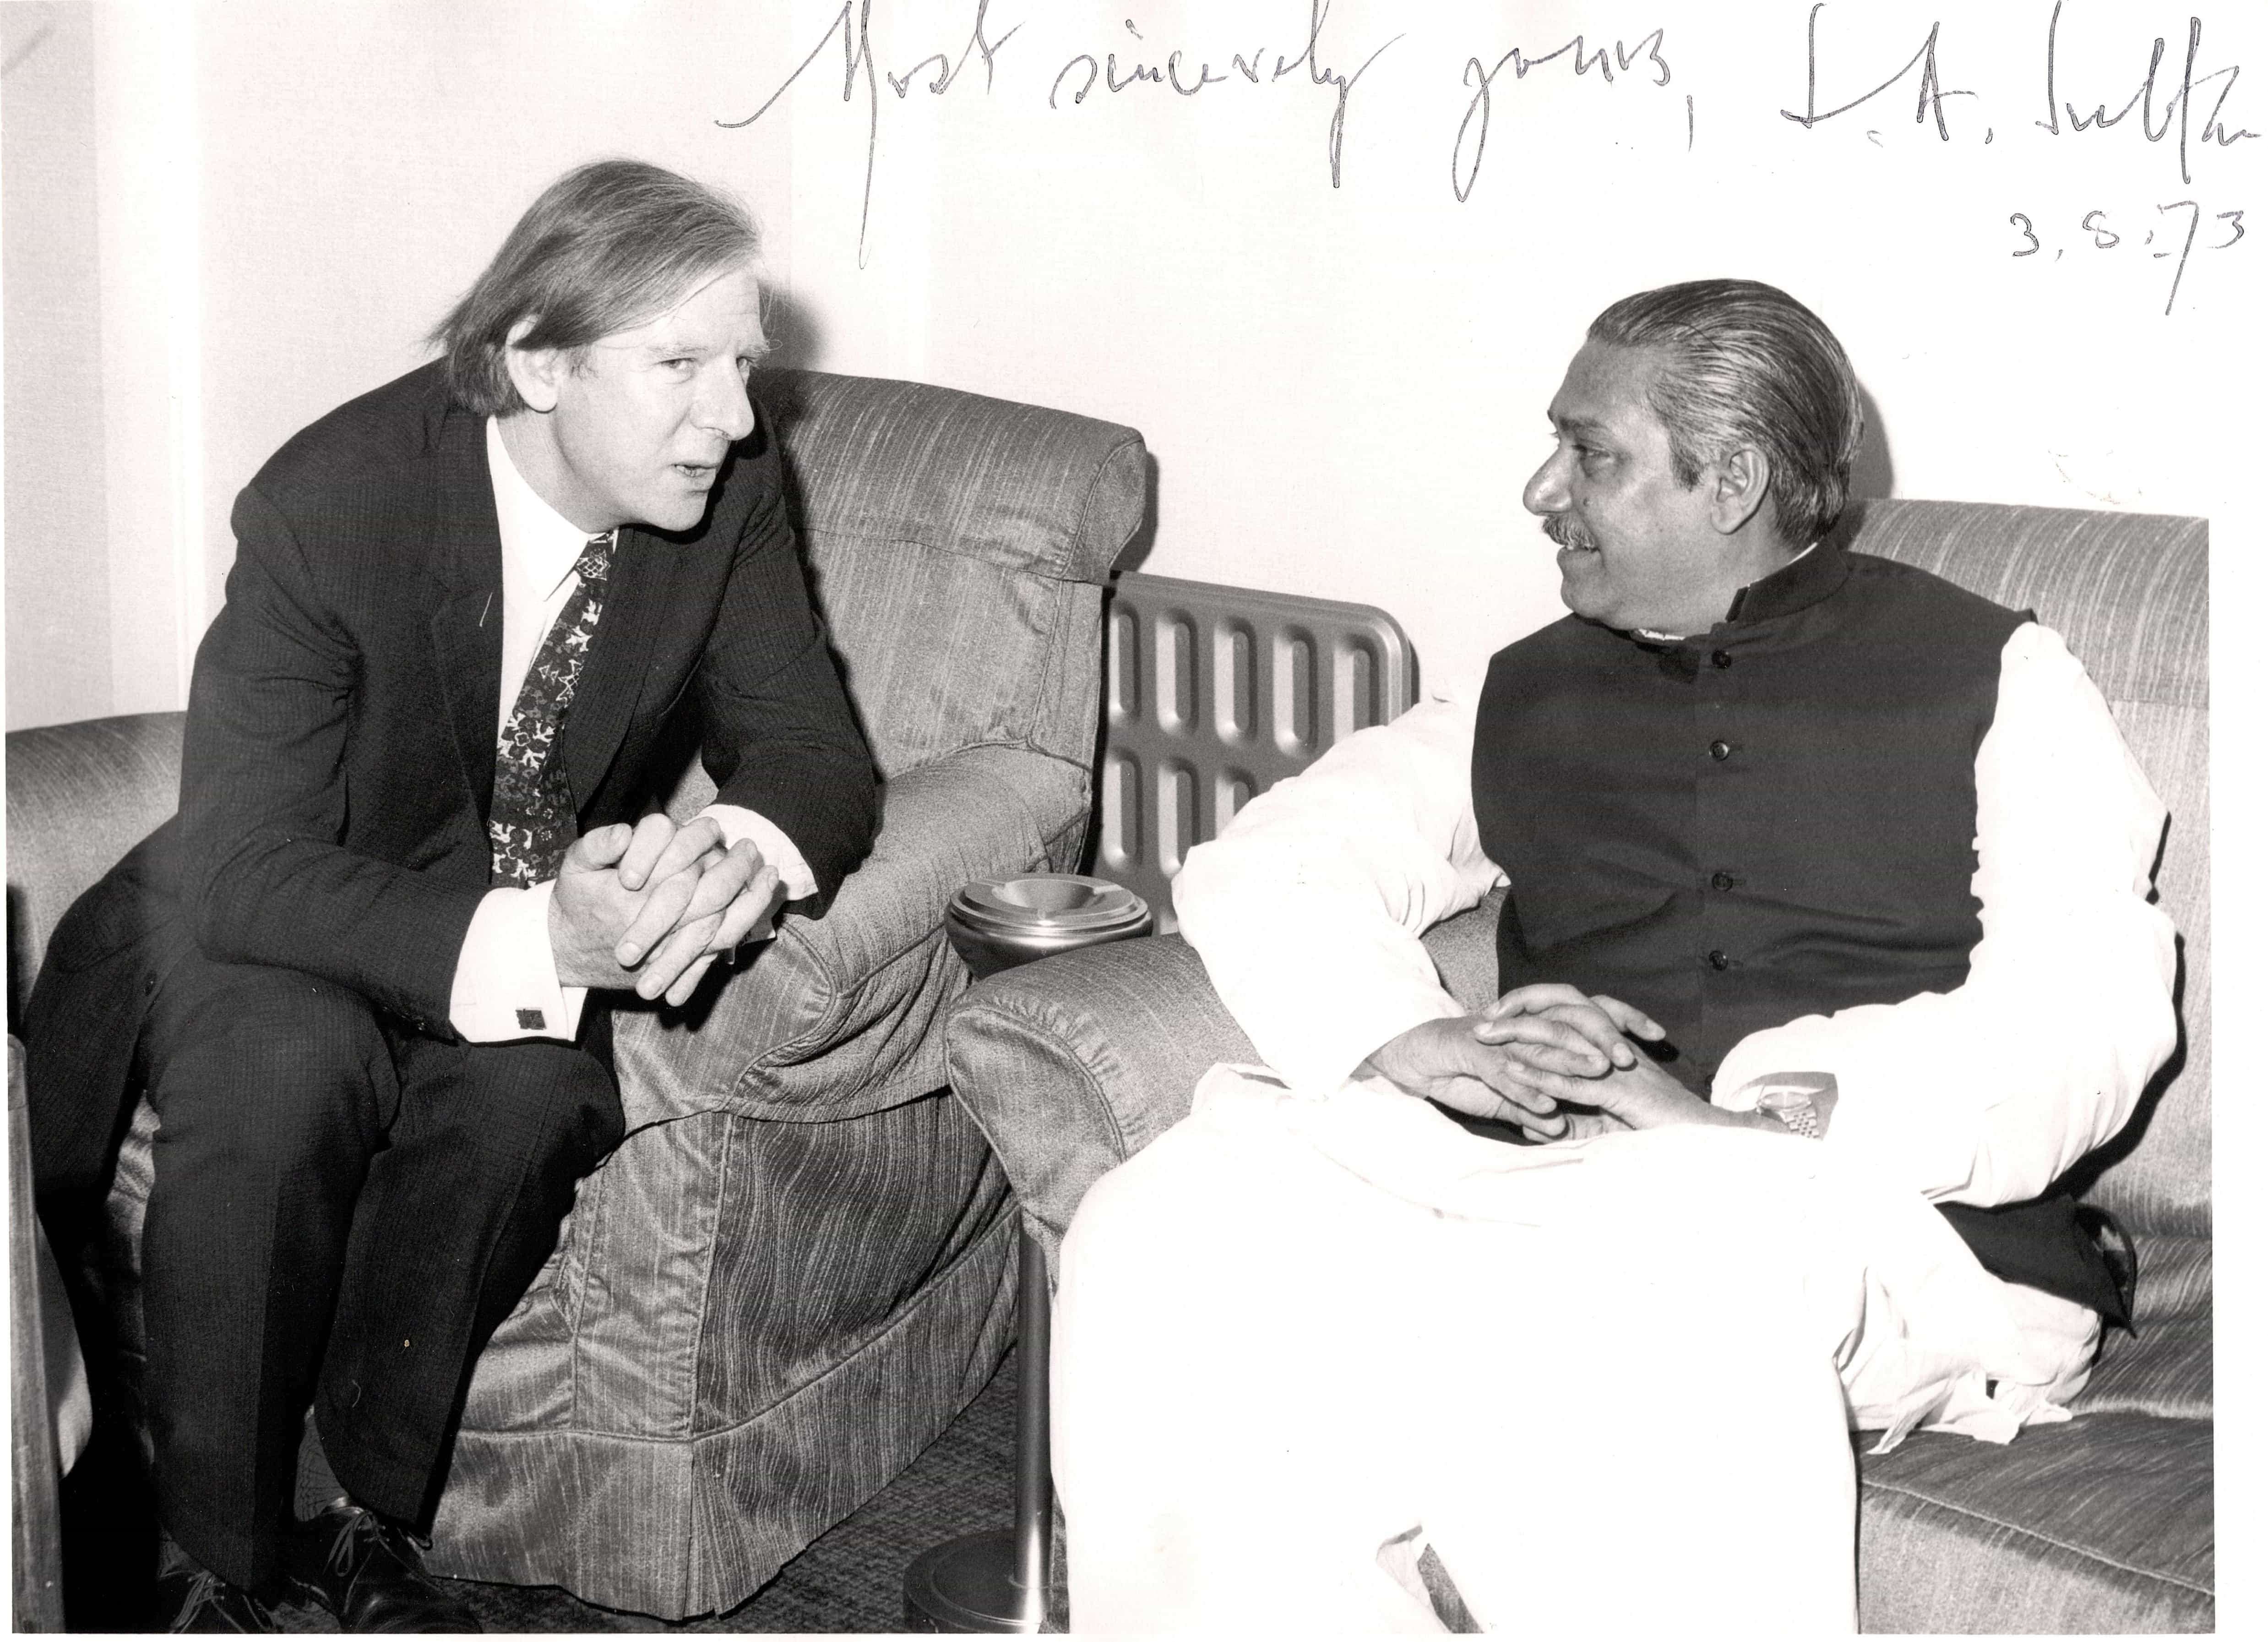 Peter Shore (Labour MP) with the founding leader of Bangladesh, Sheikh Mujibur Rahman, 1973. Image courtesy: LSE